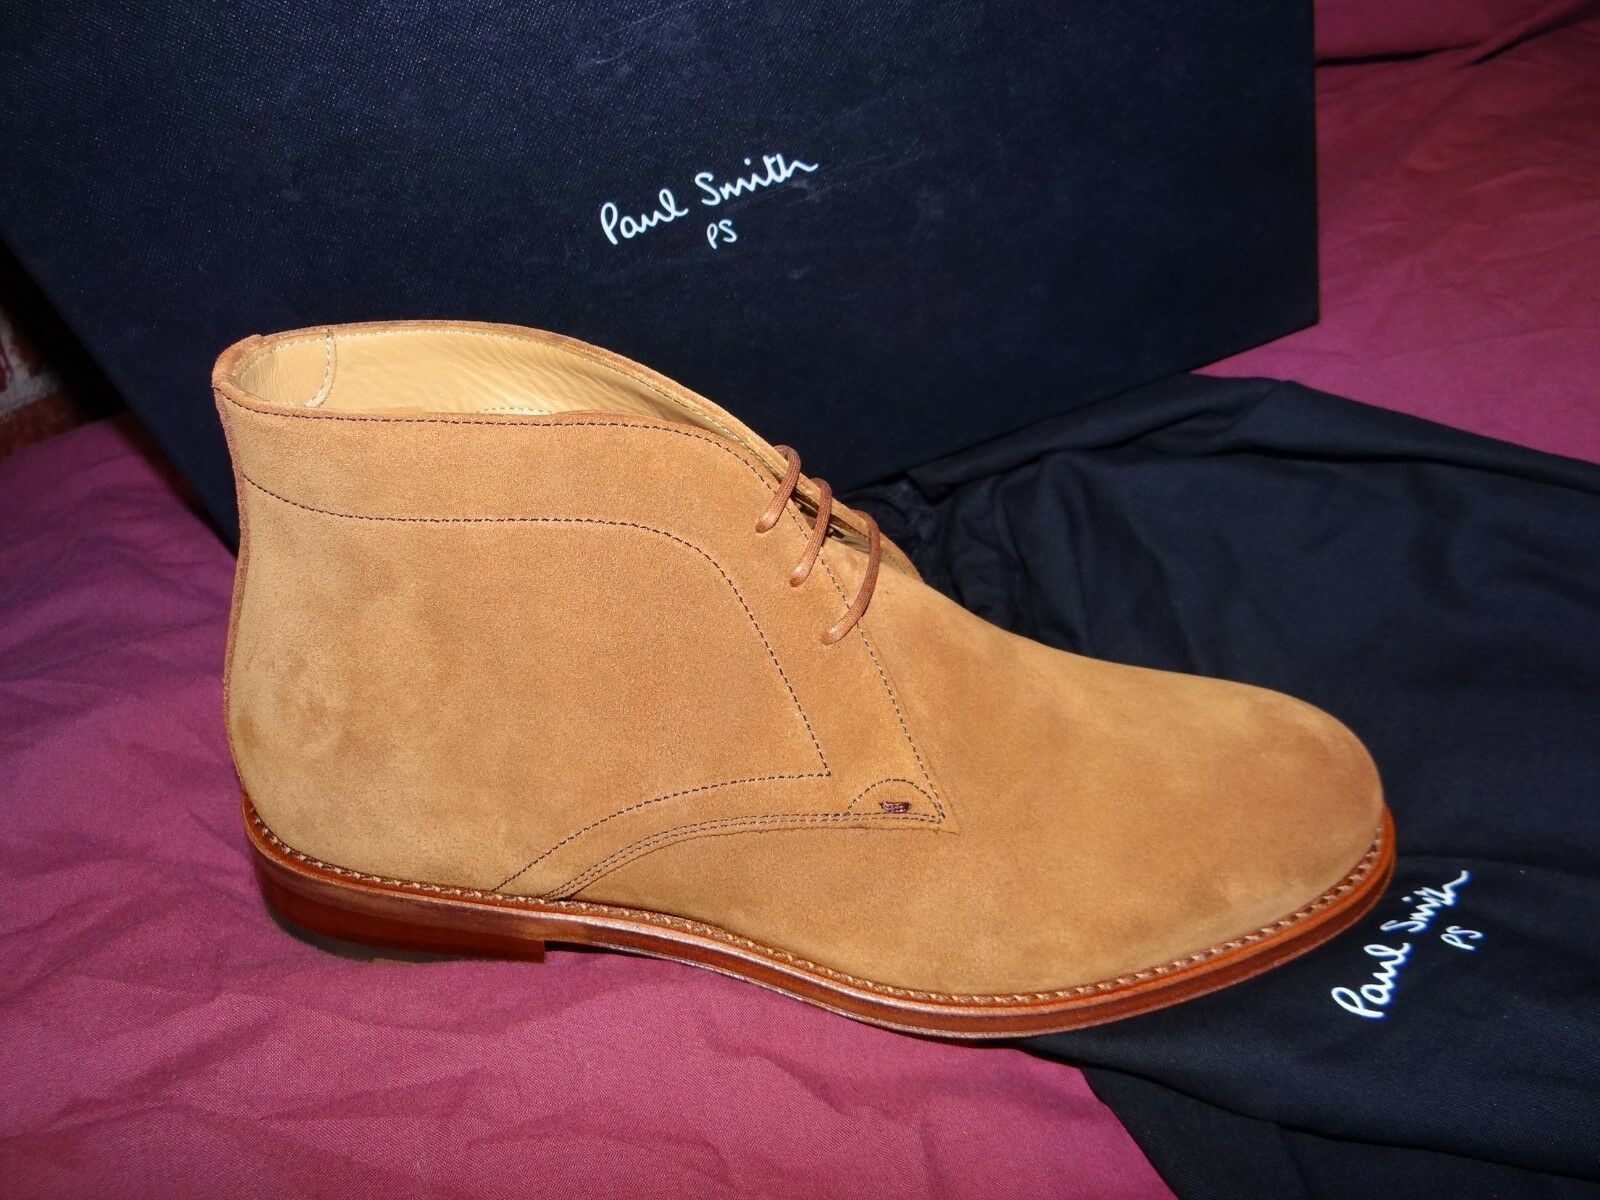 Paul Smith FAB Tan terracotta in 41 Pelle Scamosciata Chelsea EU 41 in US 8 ab7835